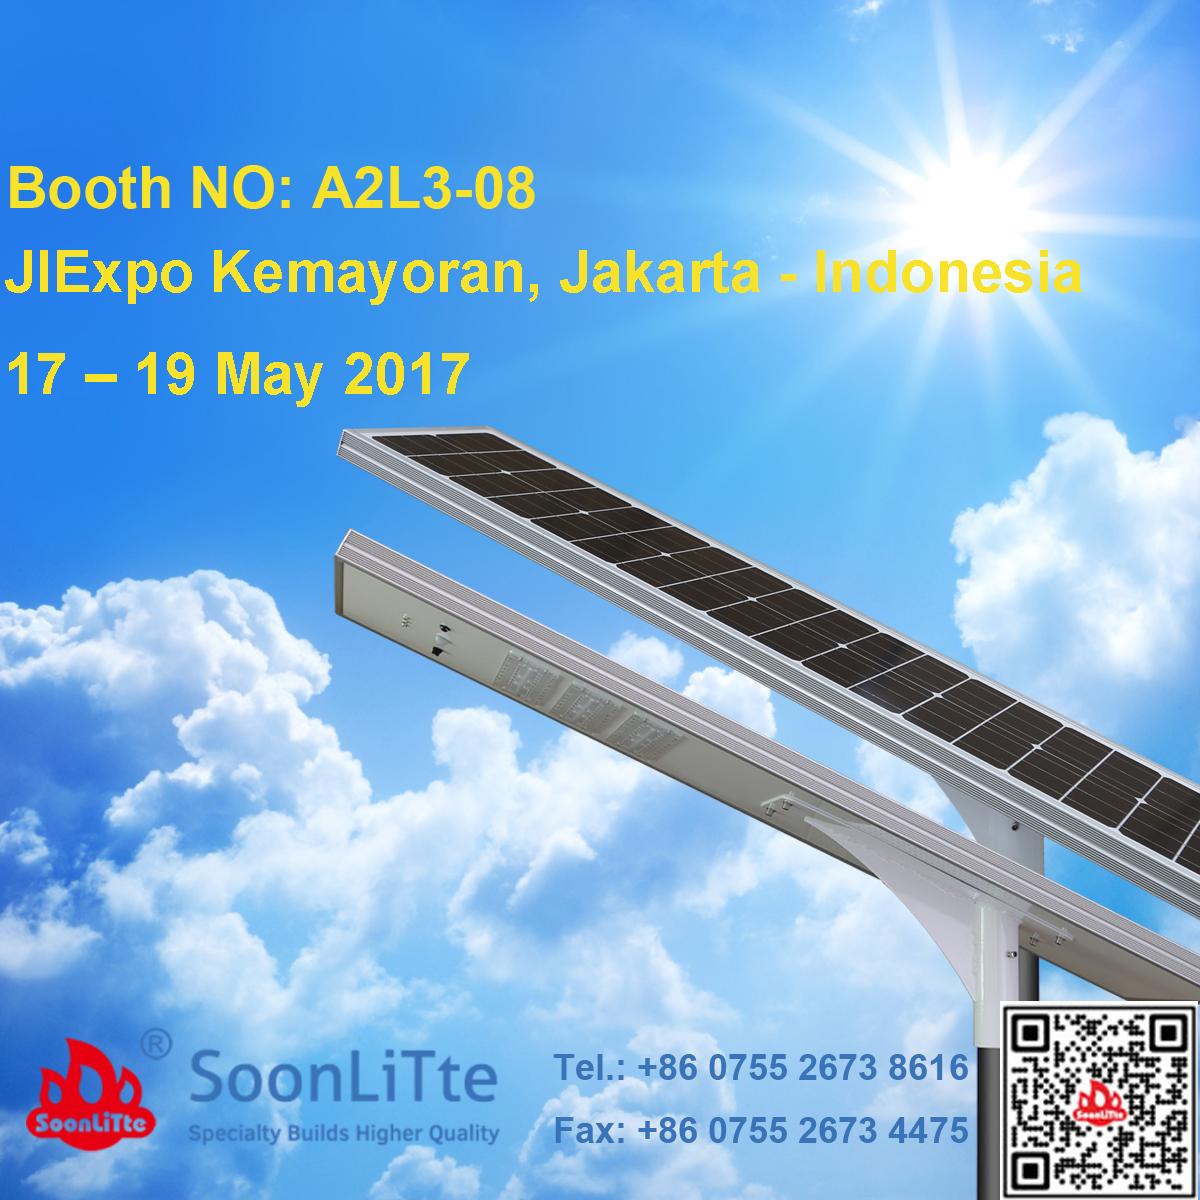 Invitation Letter Exhibition Booth : Welcome to visit us in jiexpo kemayoran jakarta